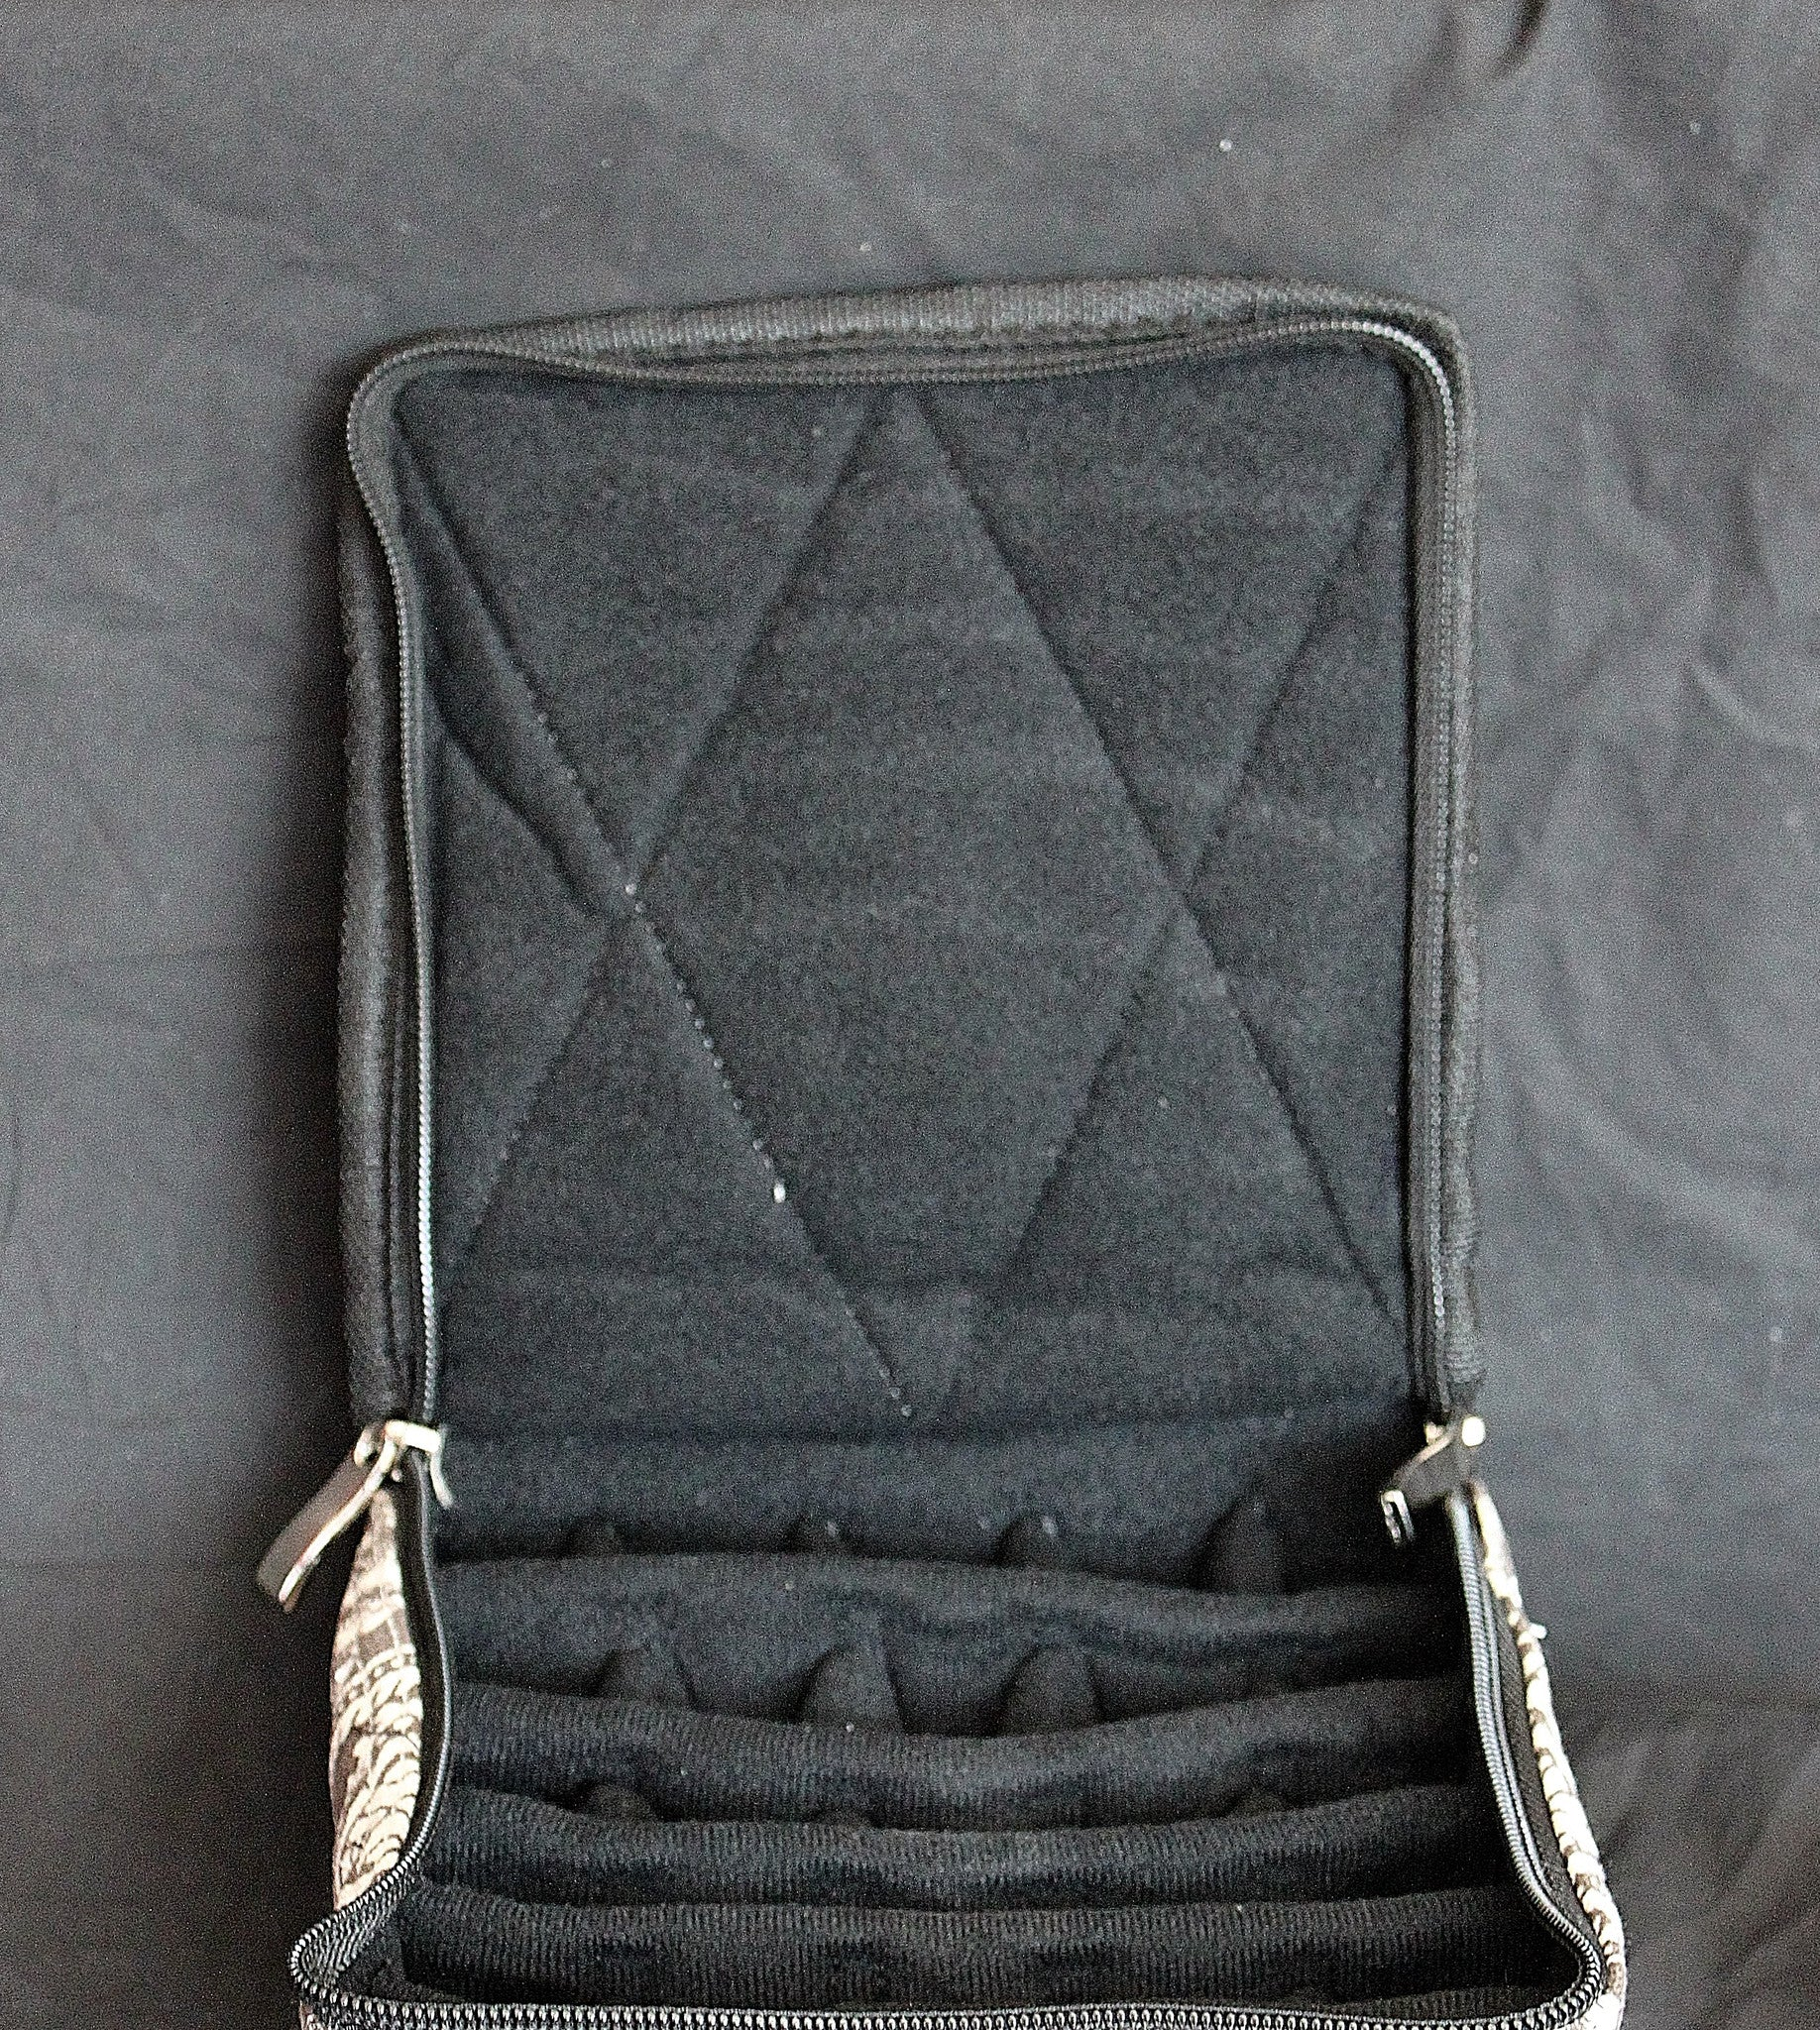 Large Durable Solid Black Essential Oil Carrying Case